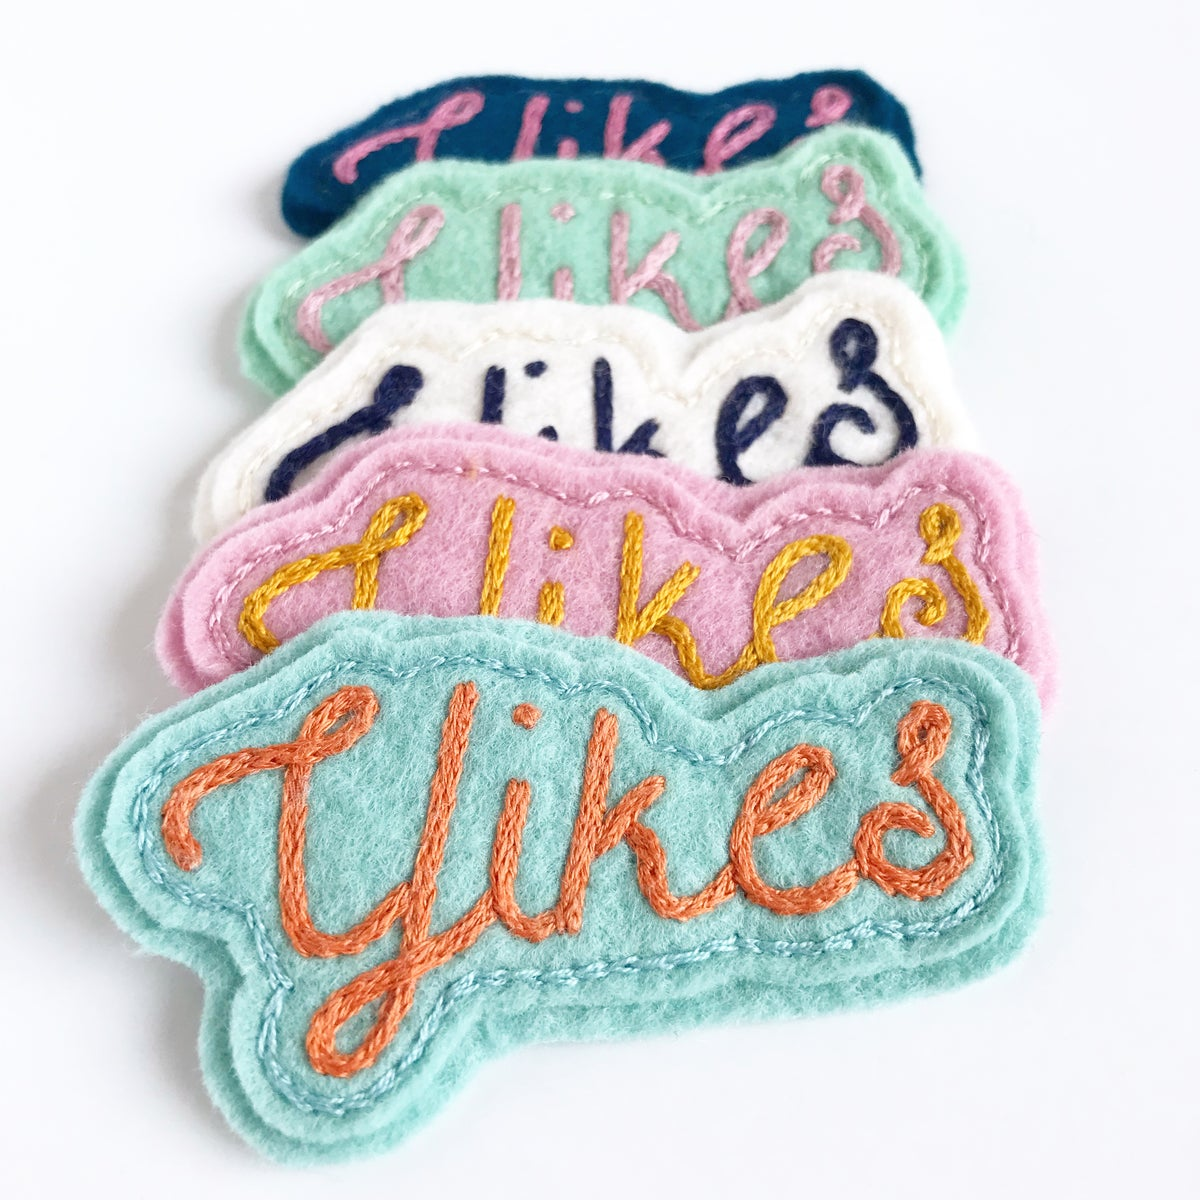 Yikes Mini Sew-On Patch